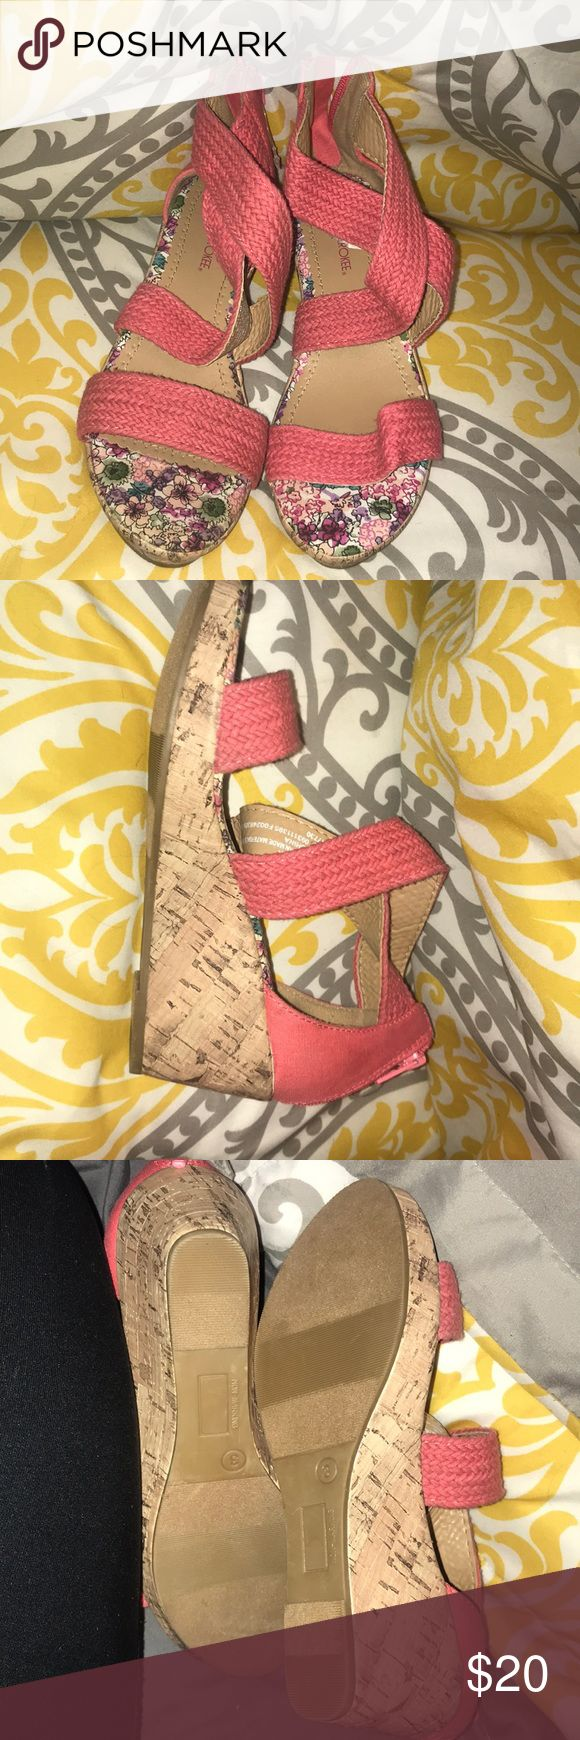 Wedges brand new with plastic tag attached Never worn . Plastic tag attached ! They are a size 3 in kids I'm guessing but I'm a 5 1/2 to 6 and they fit me when I tried them on! target Shoes Wedges